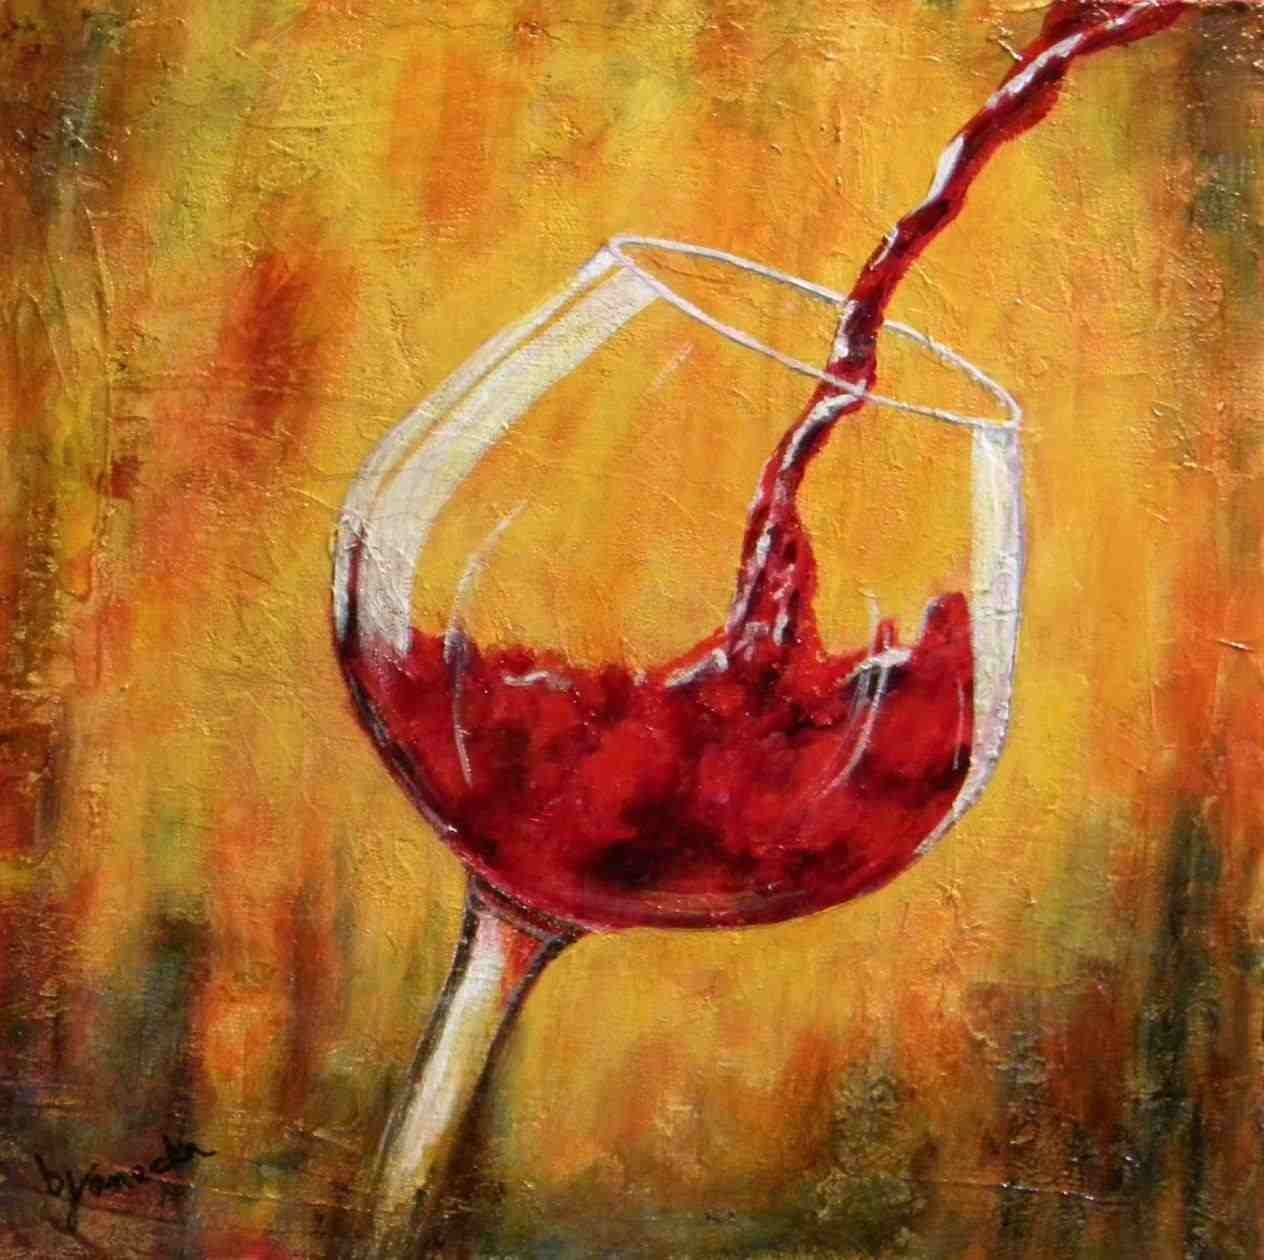 Red Wine Painting Studio Vino Art Class Wine Painting Mclaren Vale Adelaide Roy Hodrien Still Life With Red Wine Wine Wall Art Wine Glass Art Wine Painting